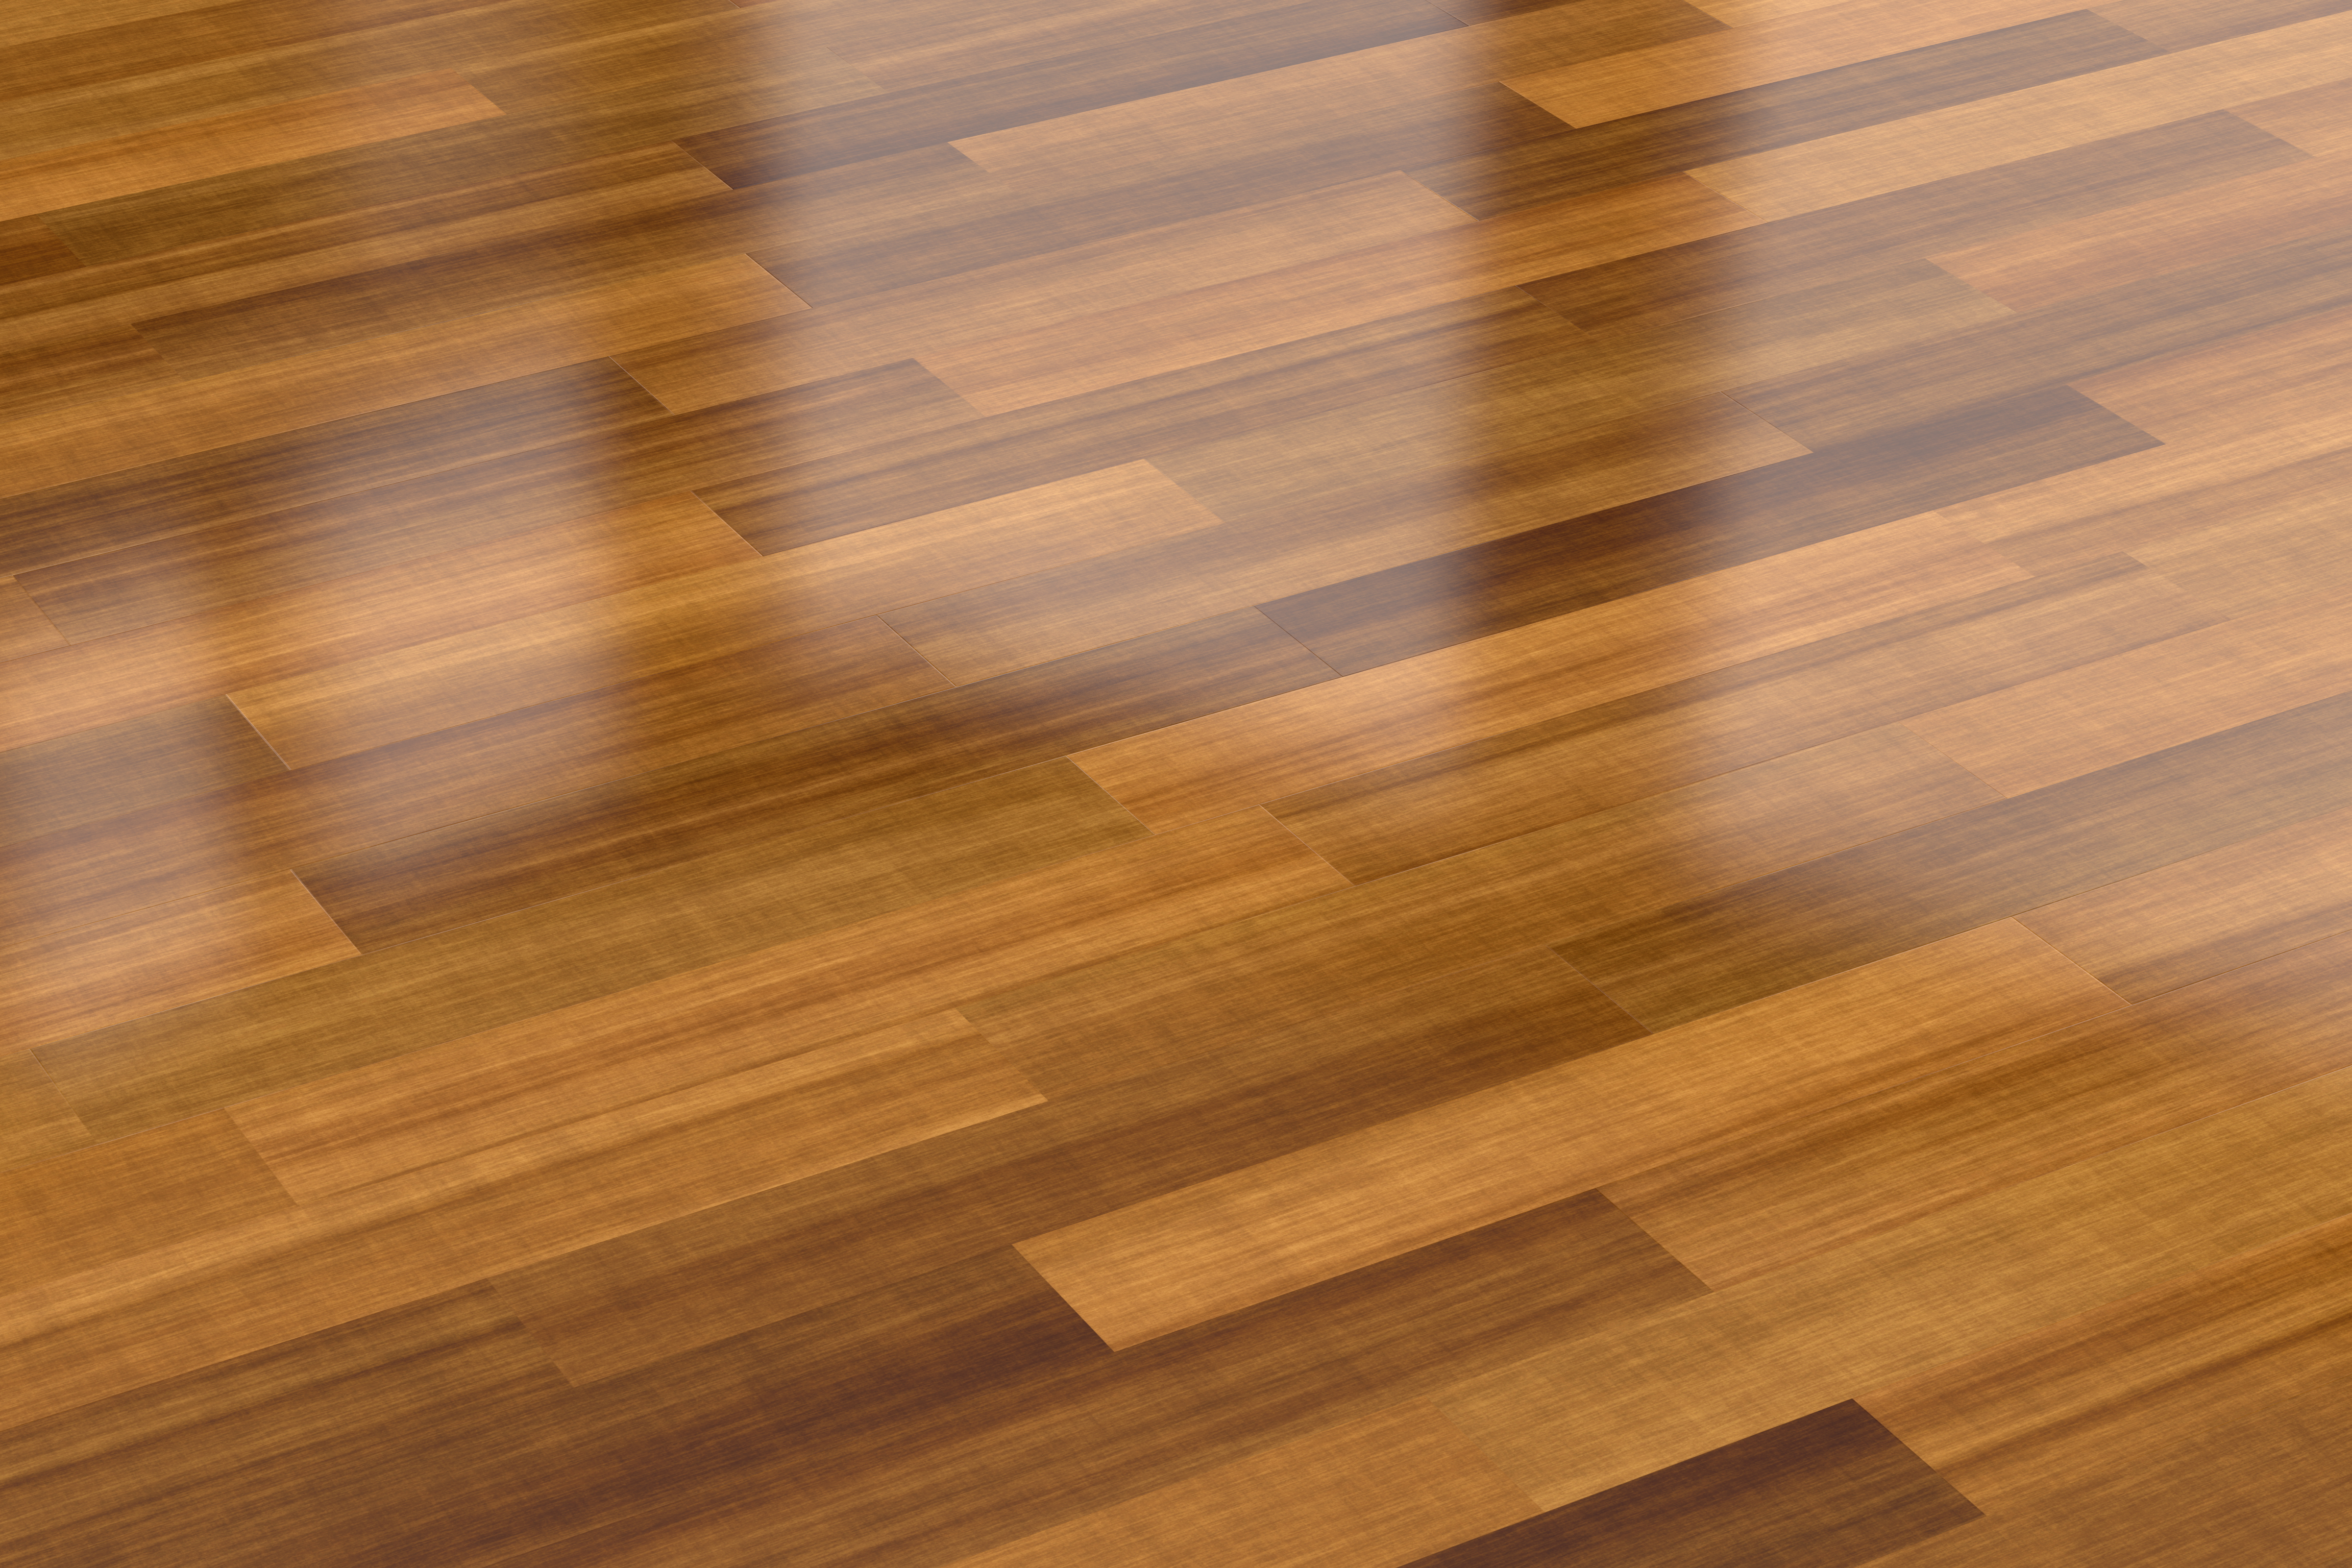 How To Clean Sticky Film From Laminate Flooring Home Guides Sf